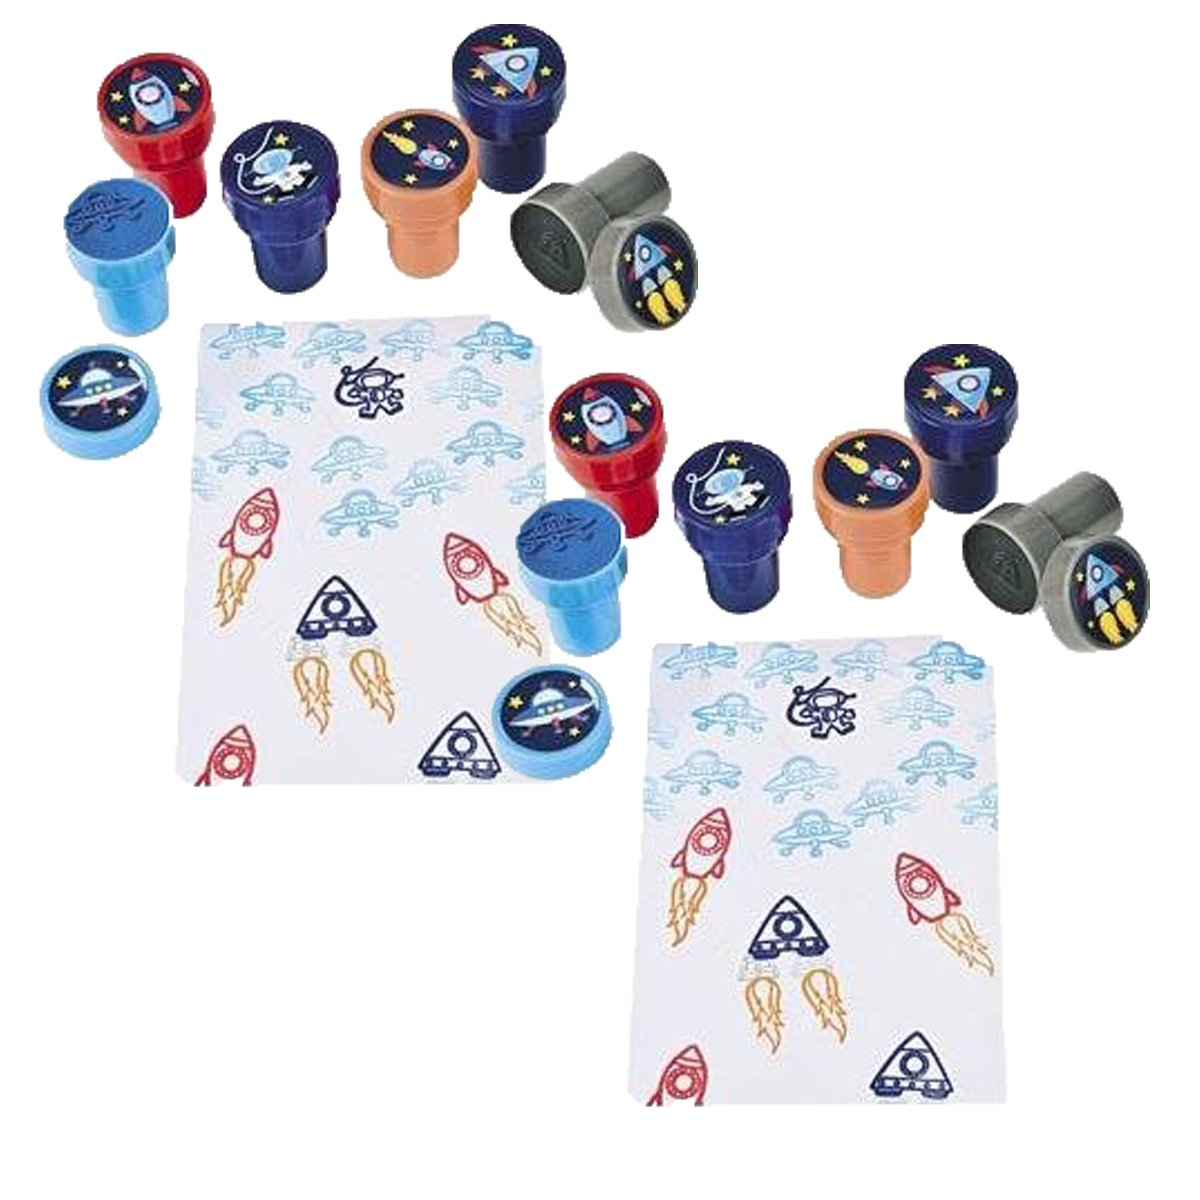 Fun Express Make-A-Spaceship Stampers, Teacher Resources & Stampers & Stamp Pads, 8 packs of 6